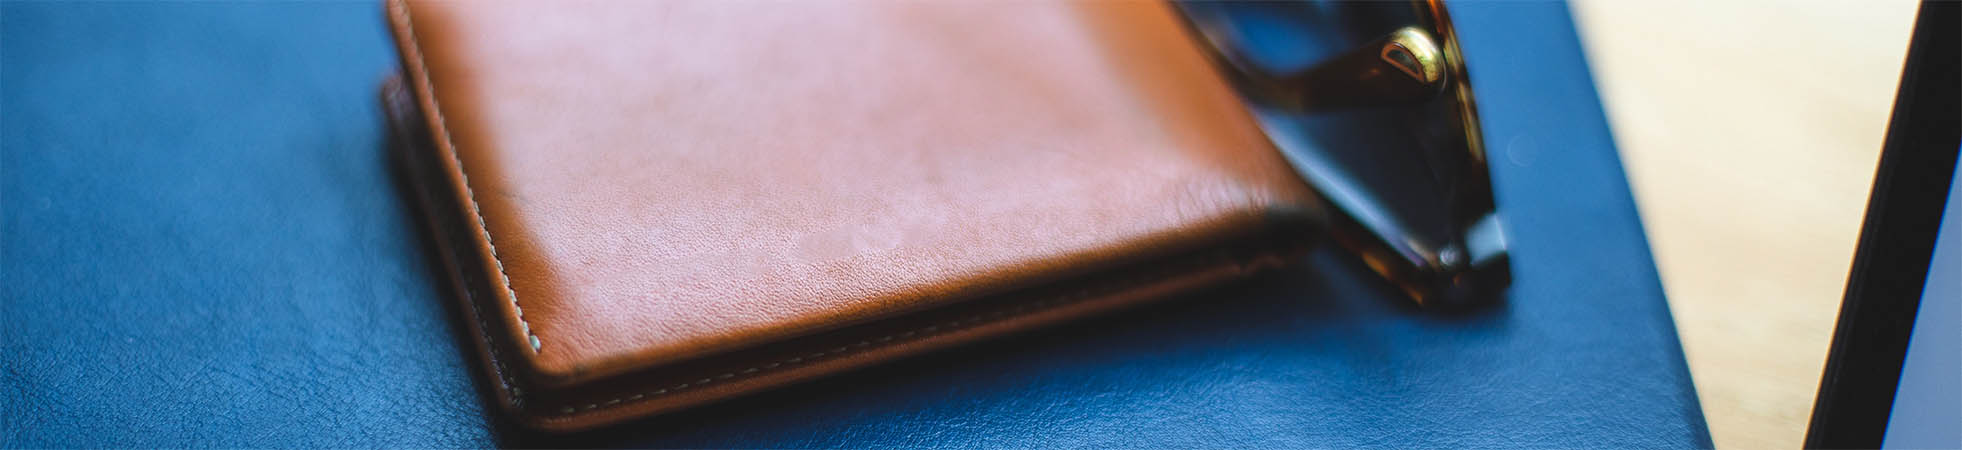 Men\'s wallets at Suitable ✔ Different colours and styles ✔ Leather wallets for men ✔ Shop online